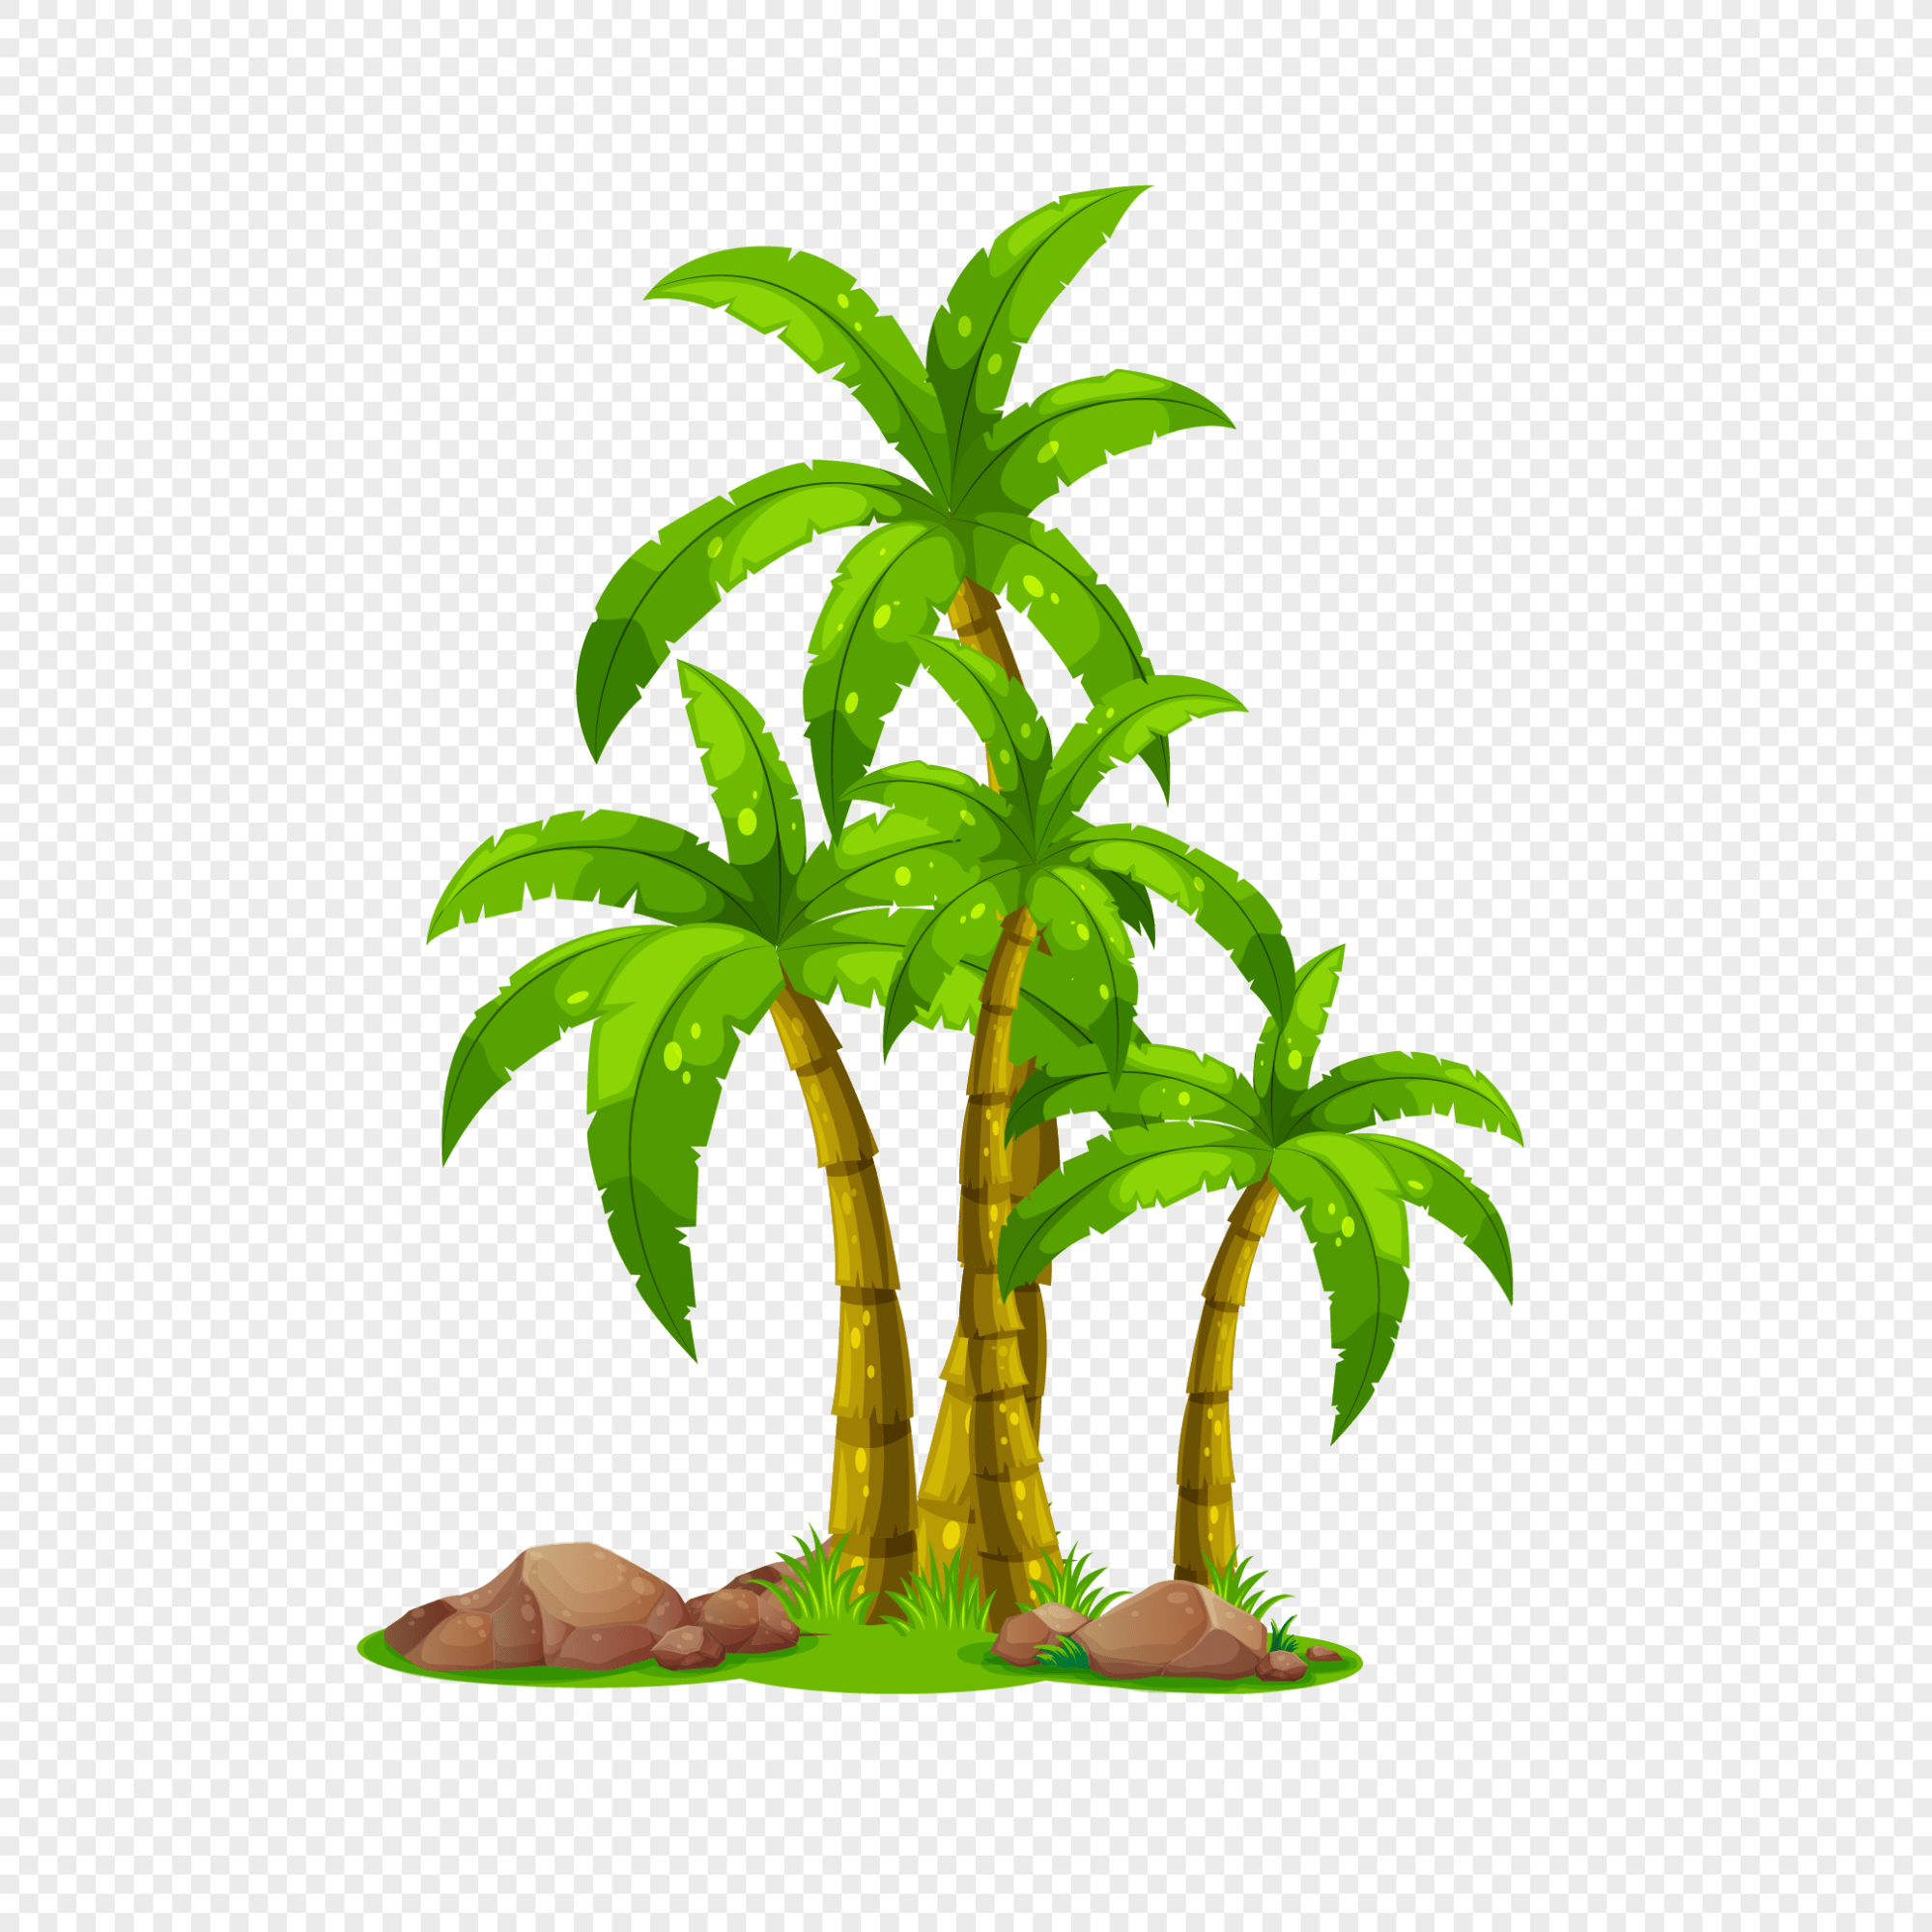 hight resolution of 2020x2020 cartoon coconut tree vector map download png image picture free